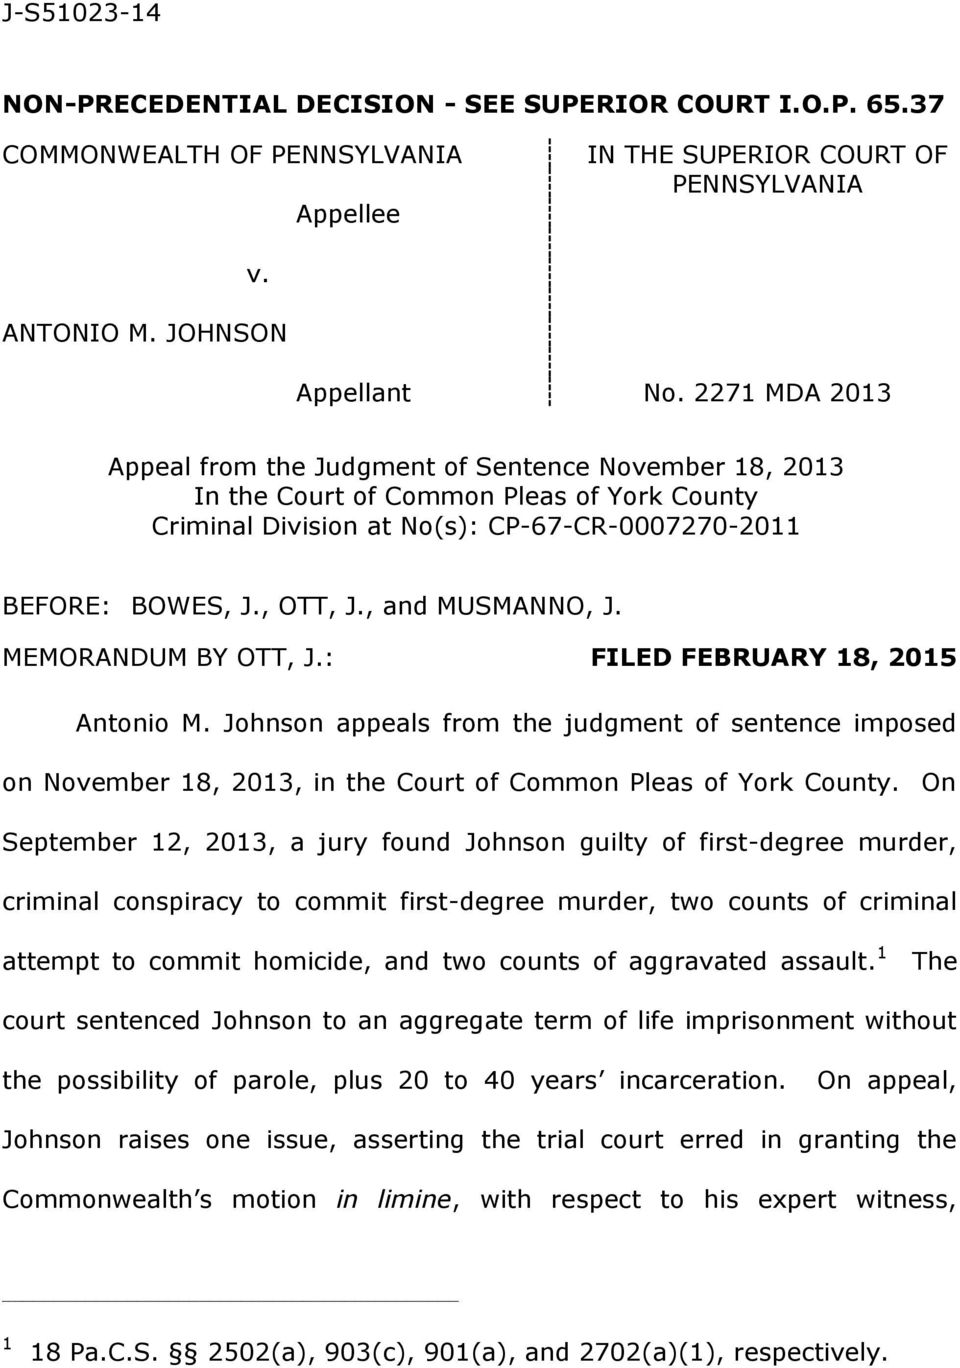 , and MUSMANNO, J. MEMORANDUM BY OTT, J.: FILED FEBRUARY 18, 2015 Antonio M. Johnson appeals from the judgment of sentence imposed on November 18, 2013, in the Court of Common Pleas of York County.